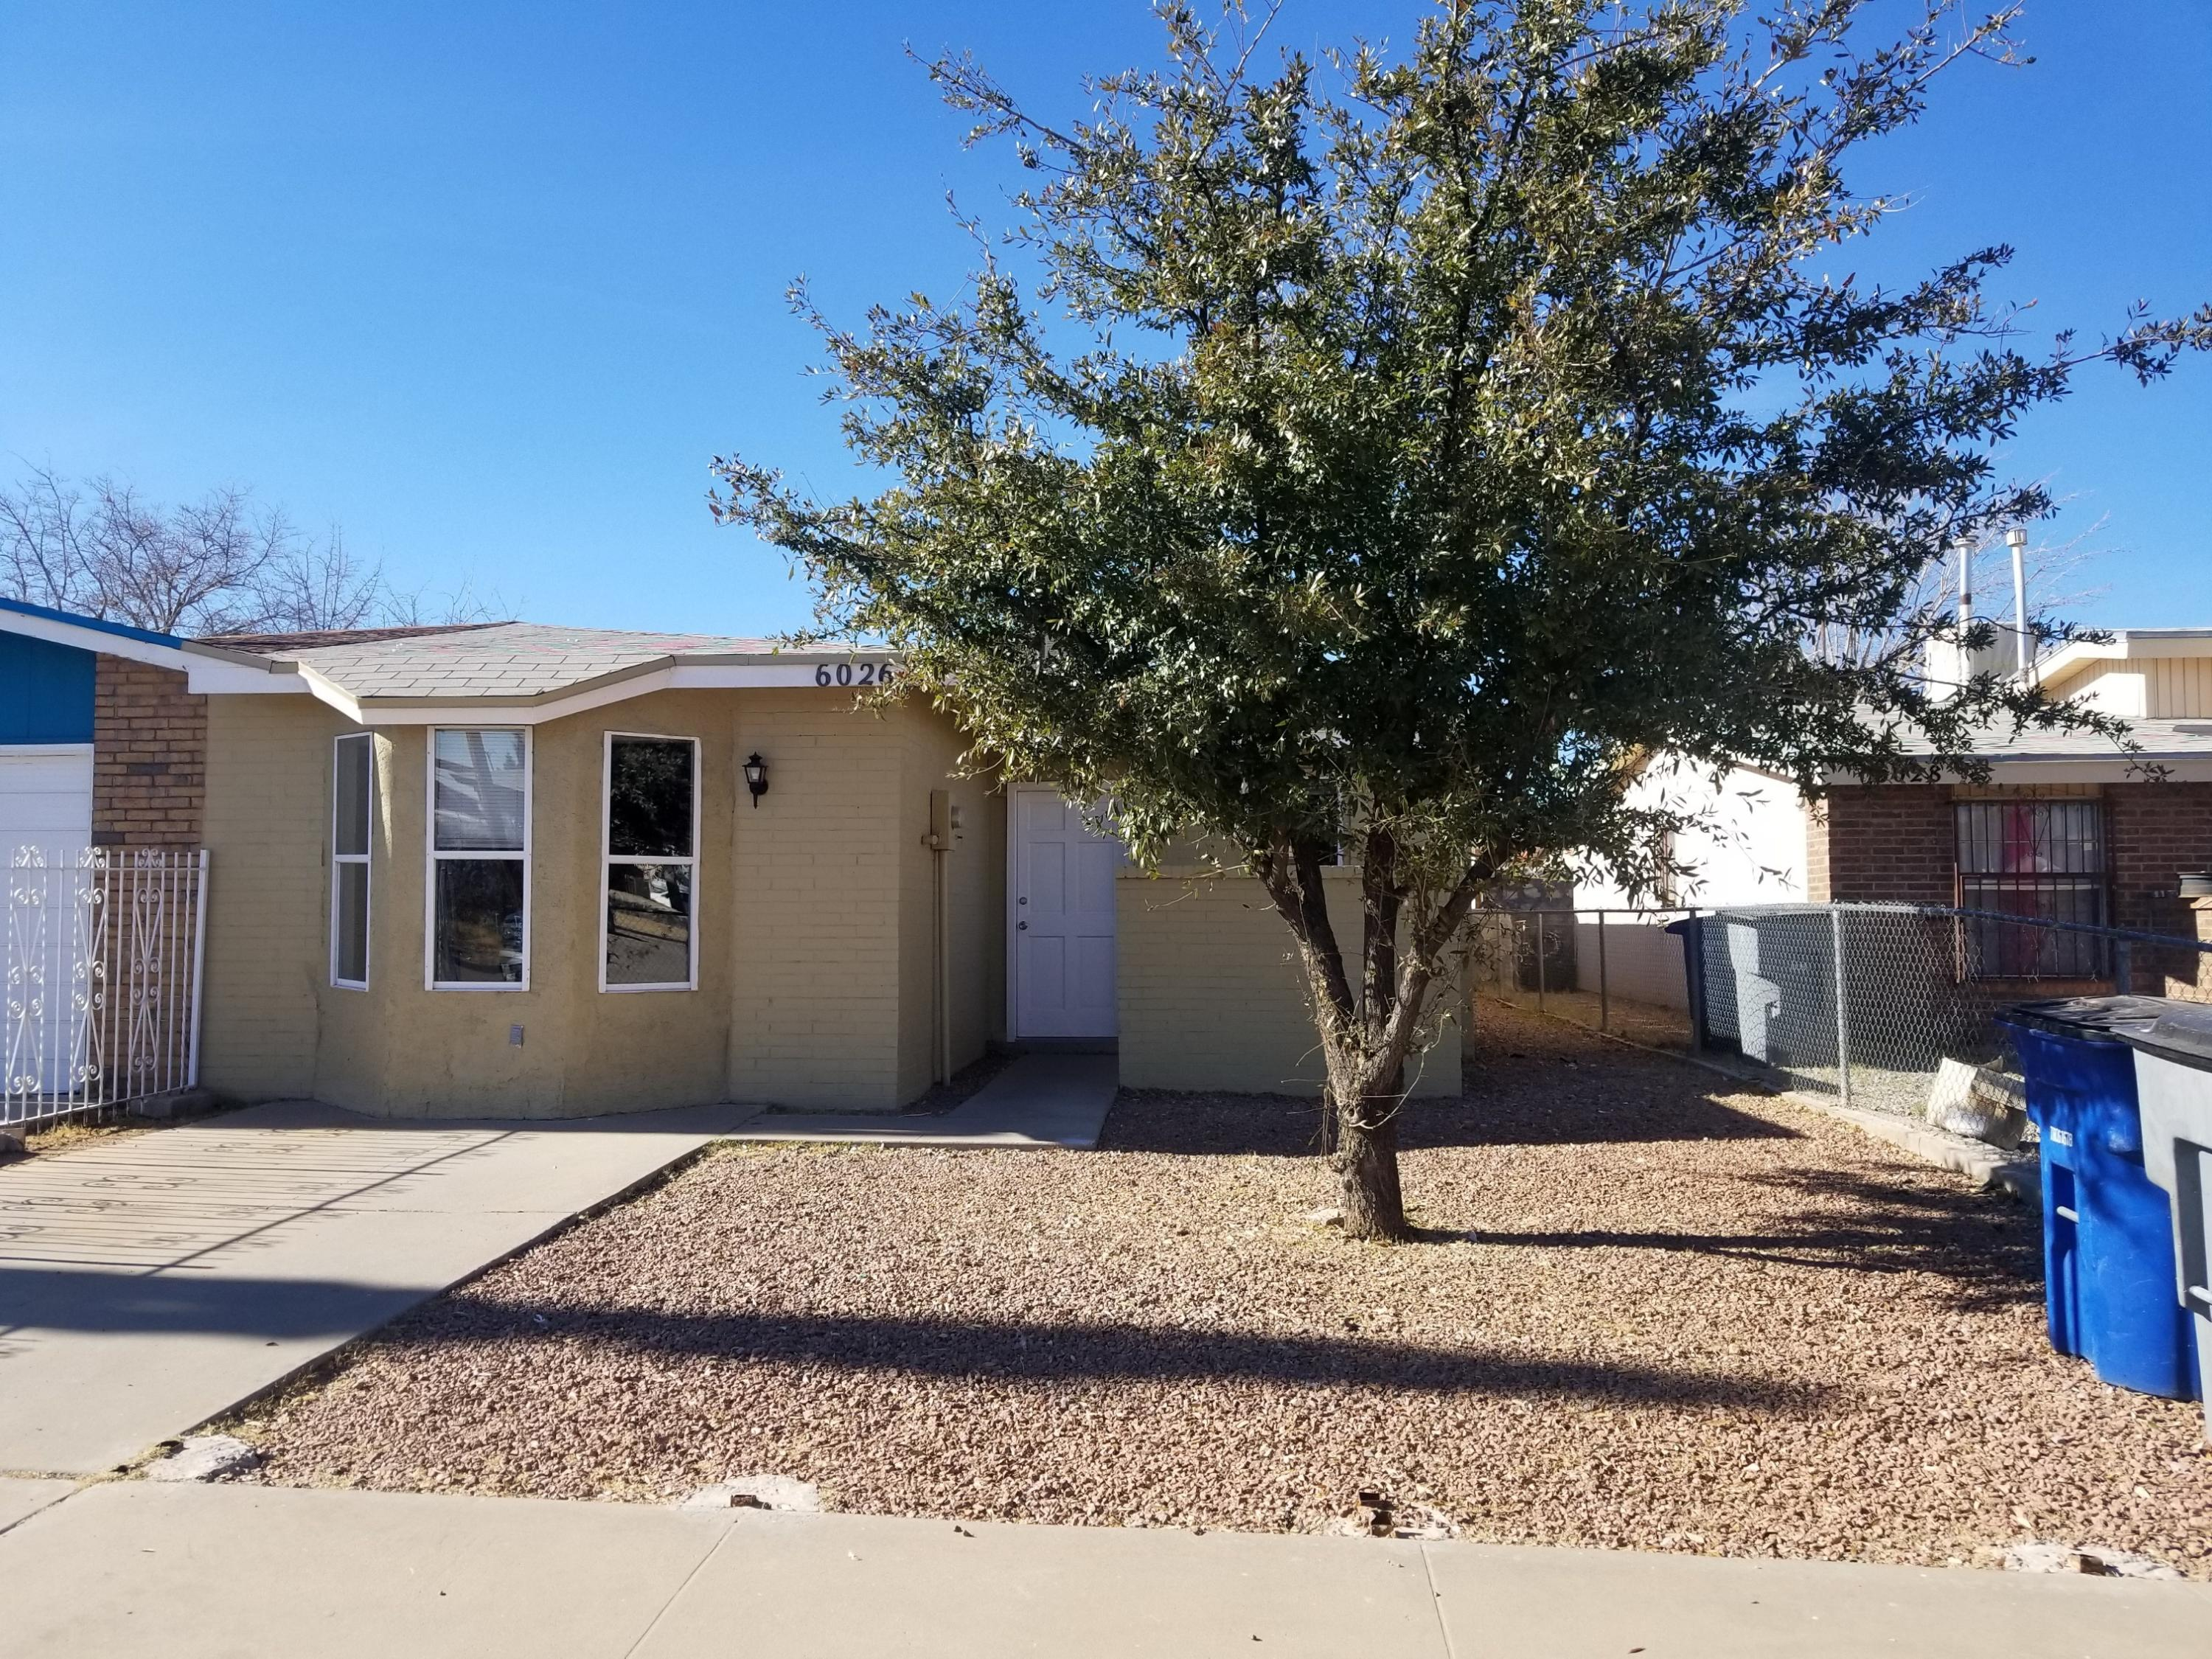 6026 MORNING GLORY, El Paso, Texas 79924, 3 Bedrooms Bedrooms, ,2 BathroomsBathrooms,Residential,For sale,MORNING GLORY,839766